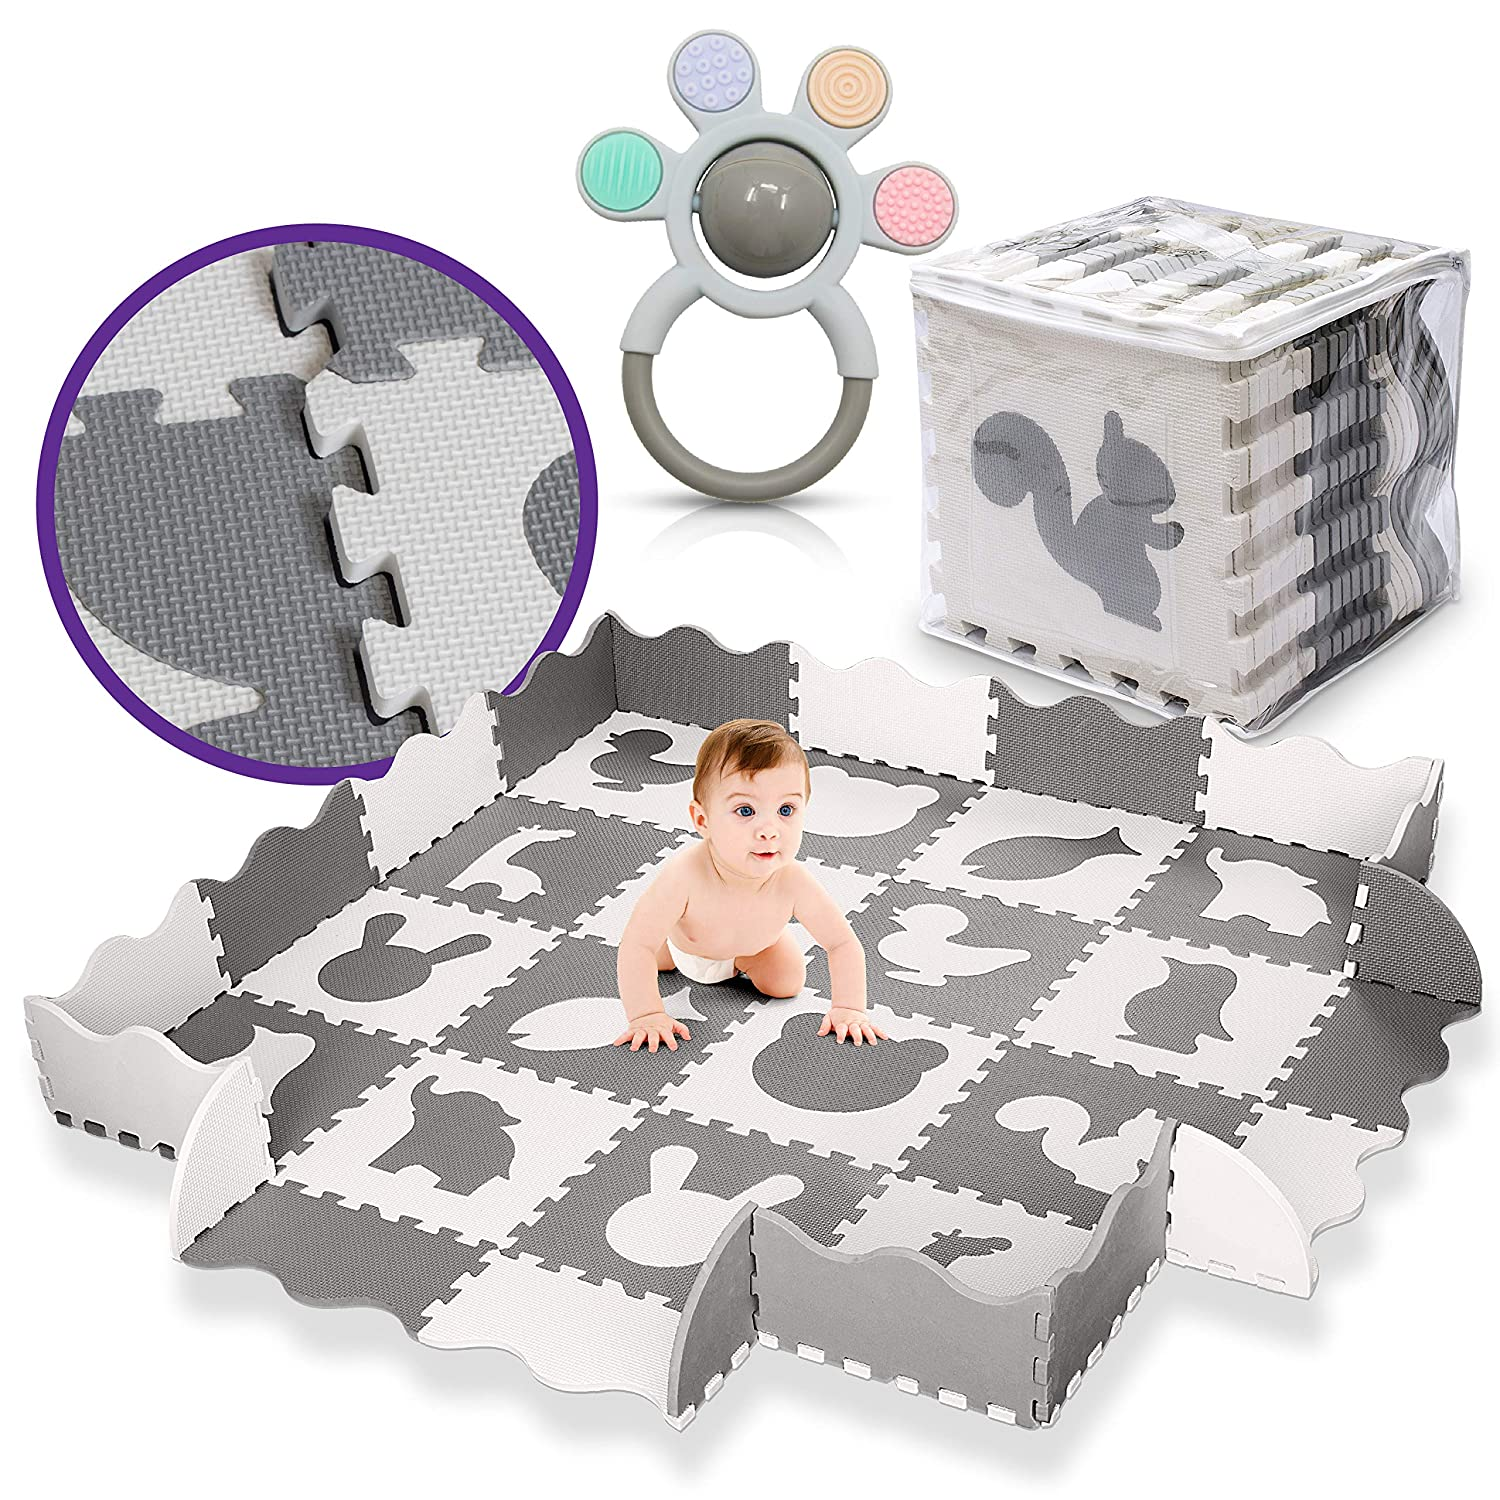 LA CHUPETA Large Baby Play Mat with Fence, Extra Thick 60x60x0.6 inches, Foam Interlocking Puzzle Tiles, Crawling Mat, Tummy Time & Floor Play, Gray and White, Bonus Teething Ring